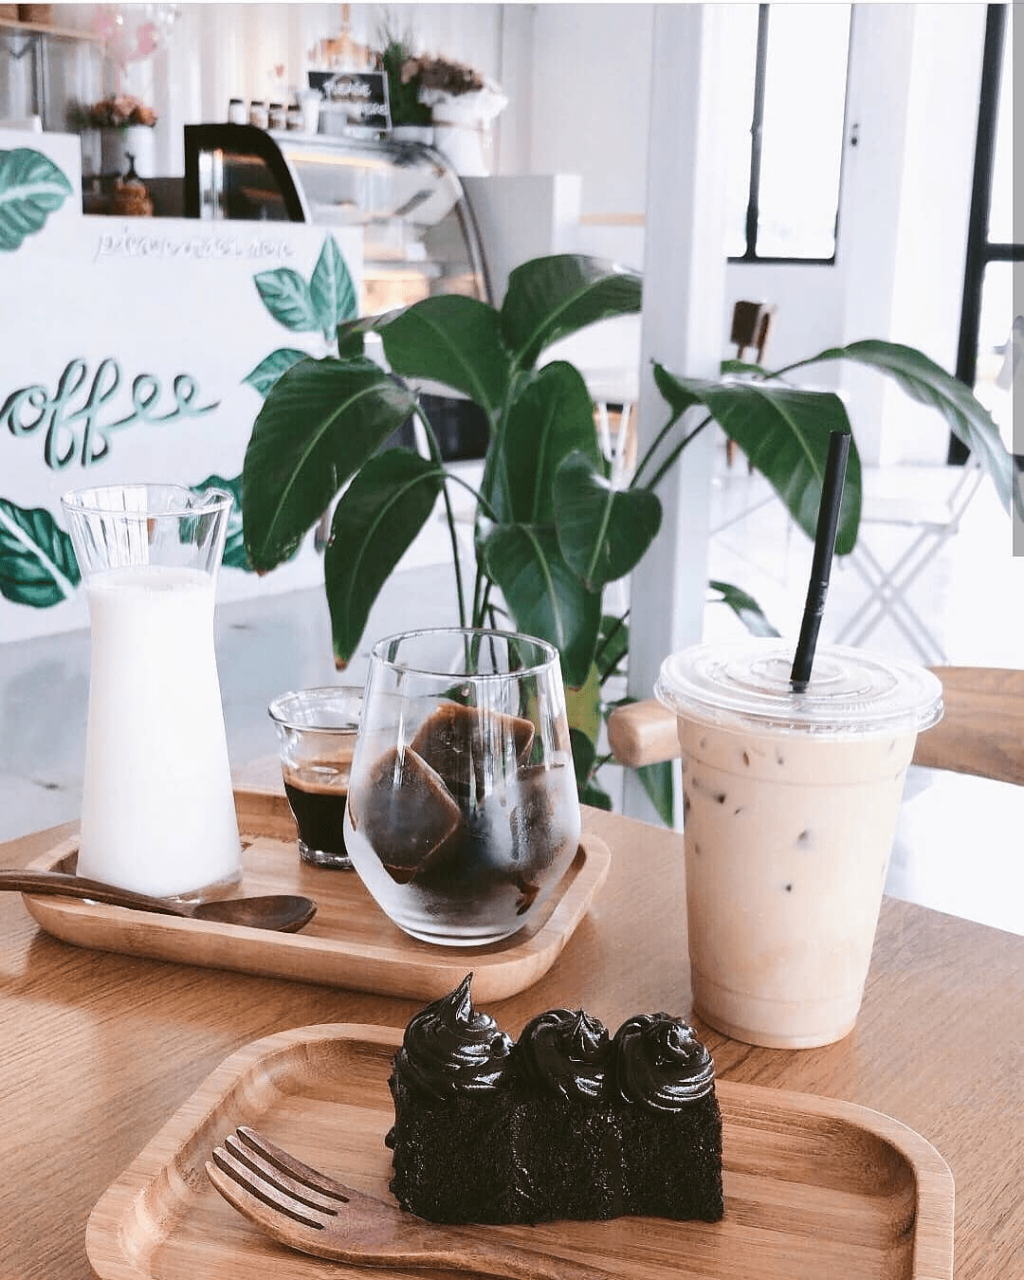 93 Bangkok coffee - cake and drink